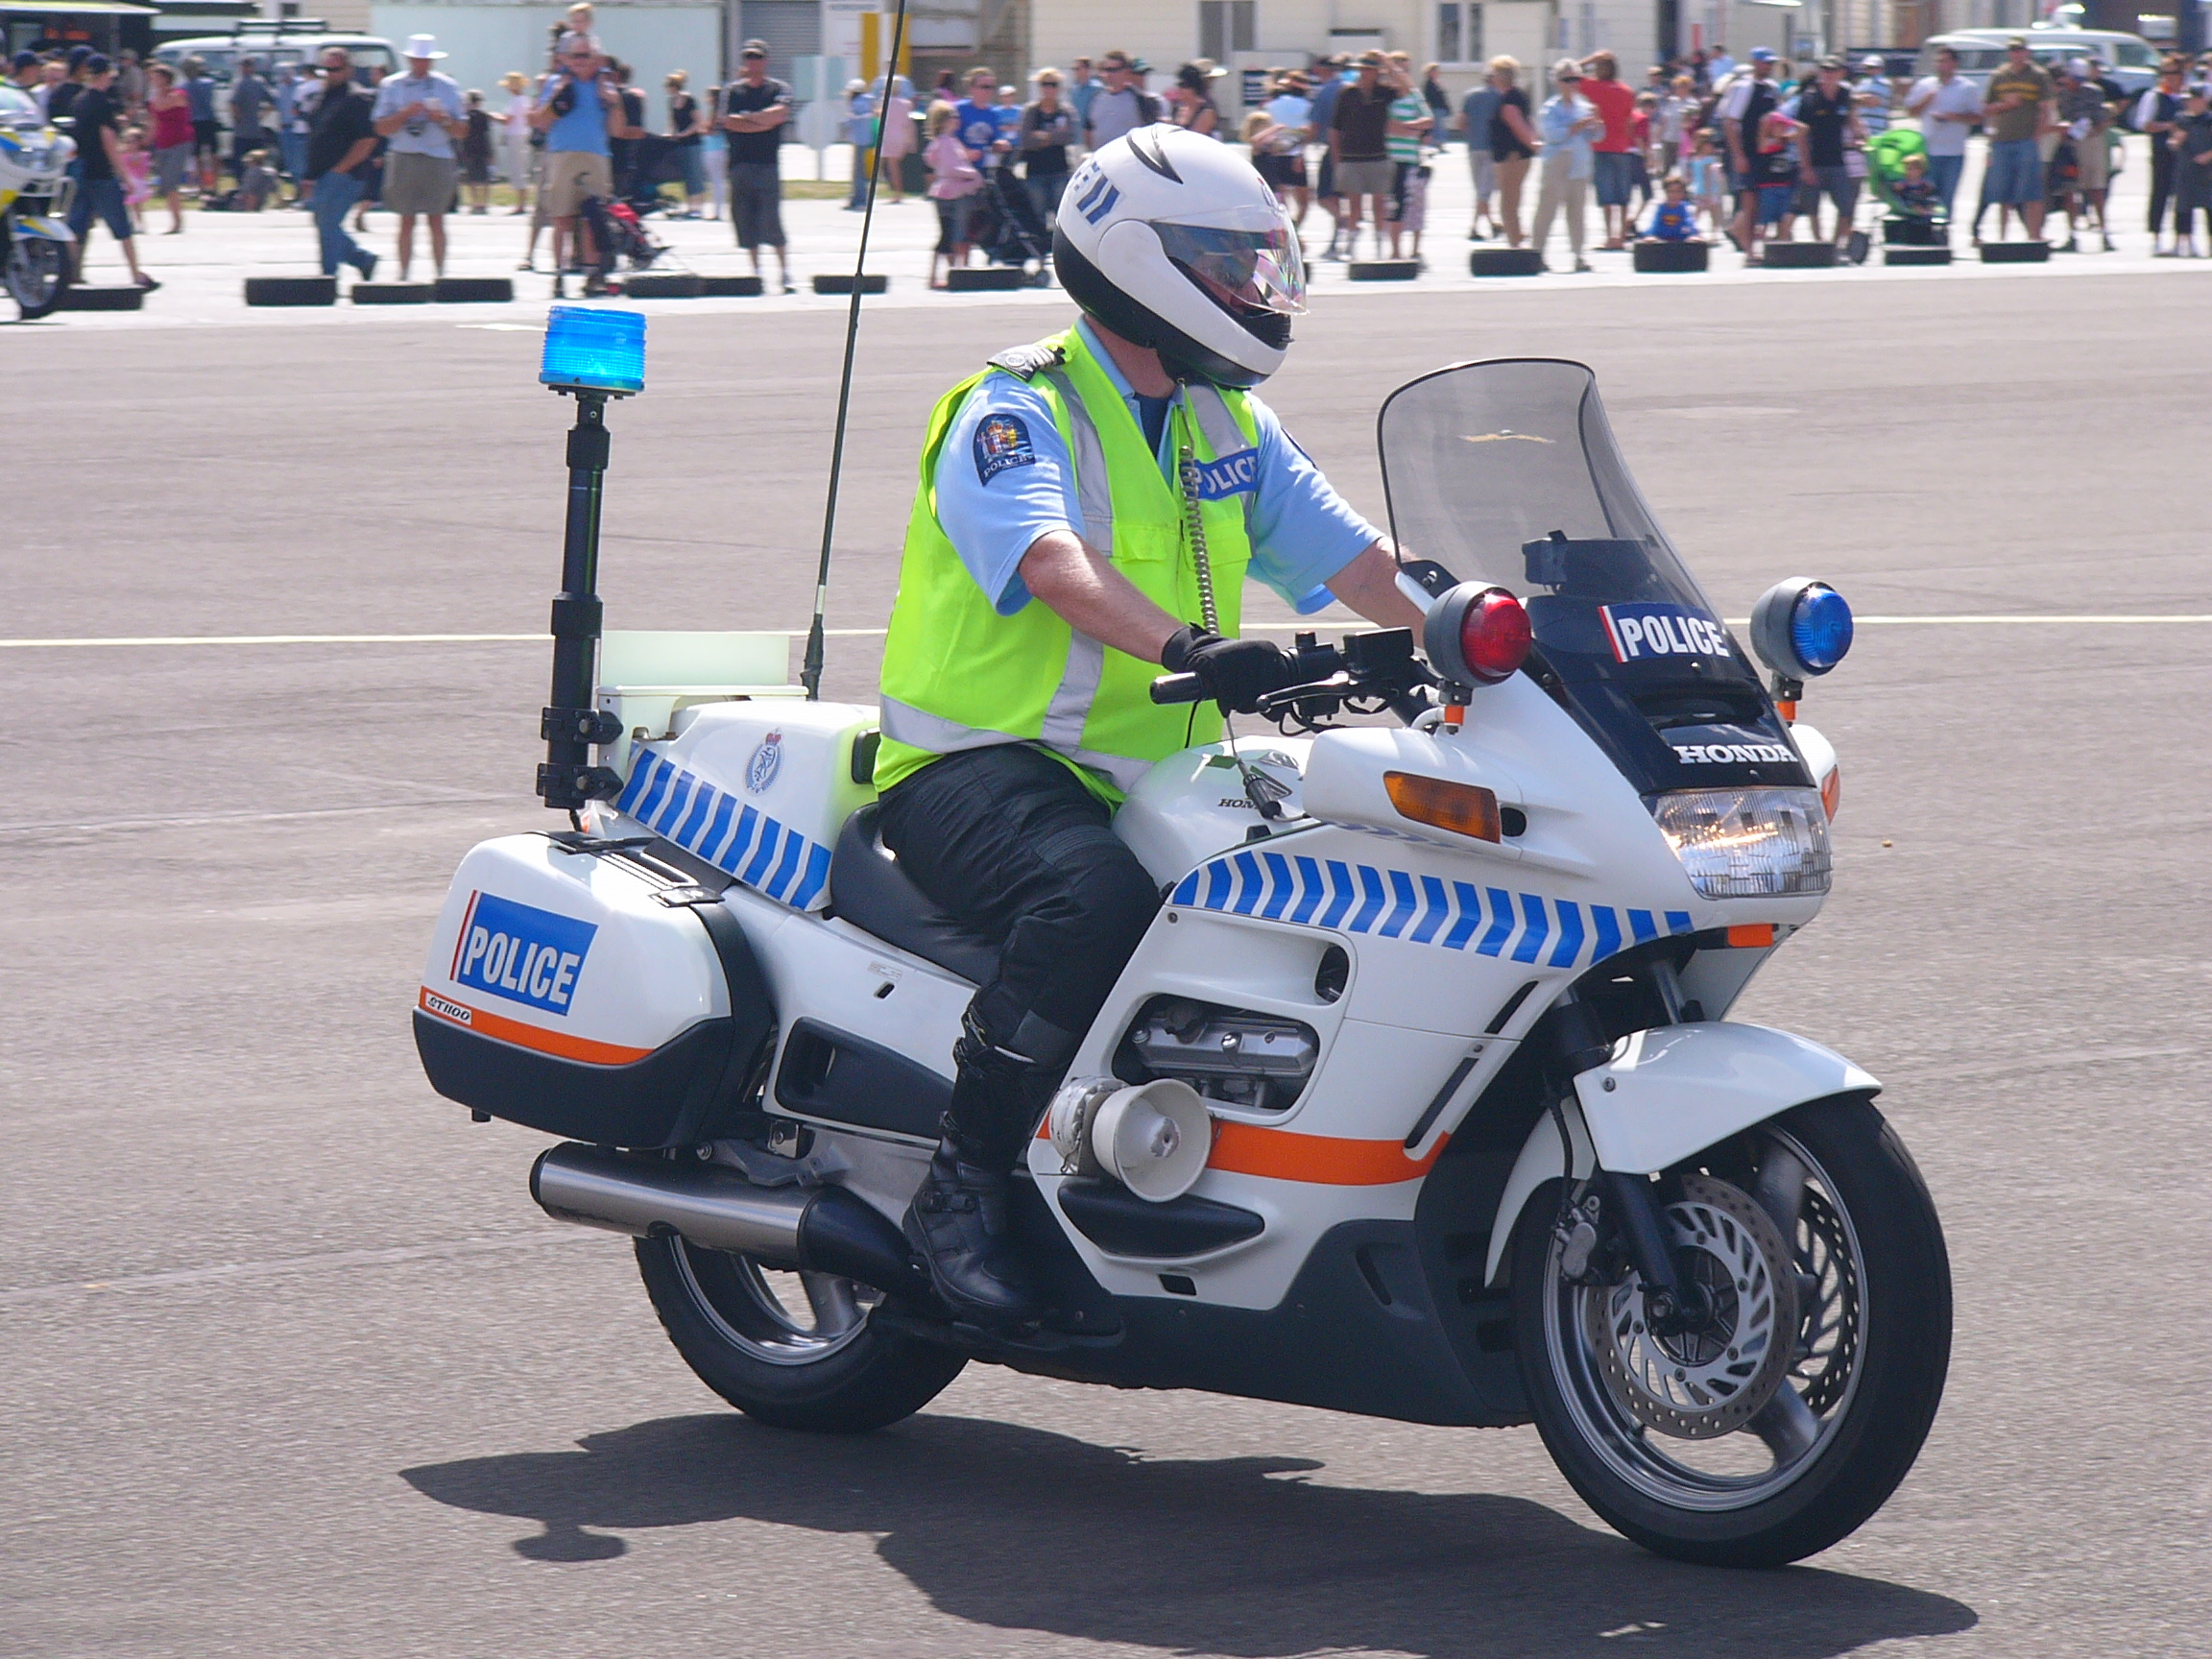 file:nz police motorcycles display - wikimedia commons